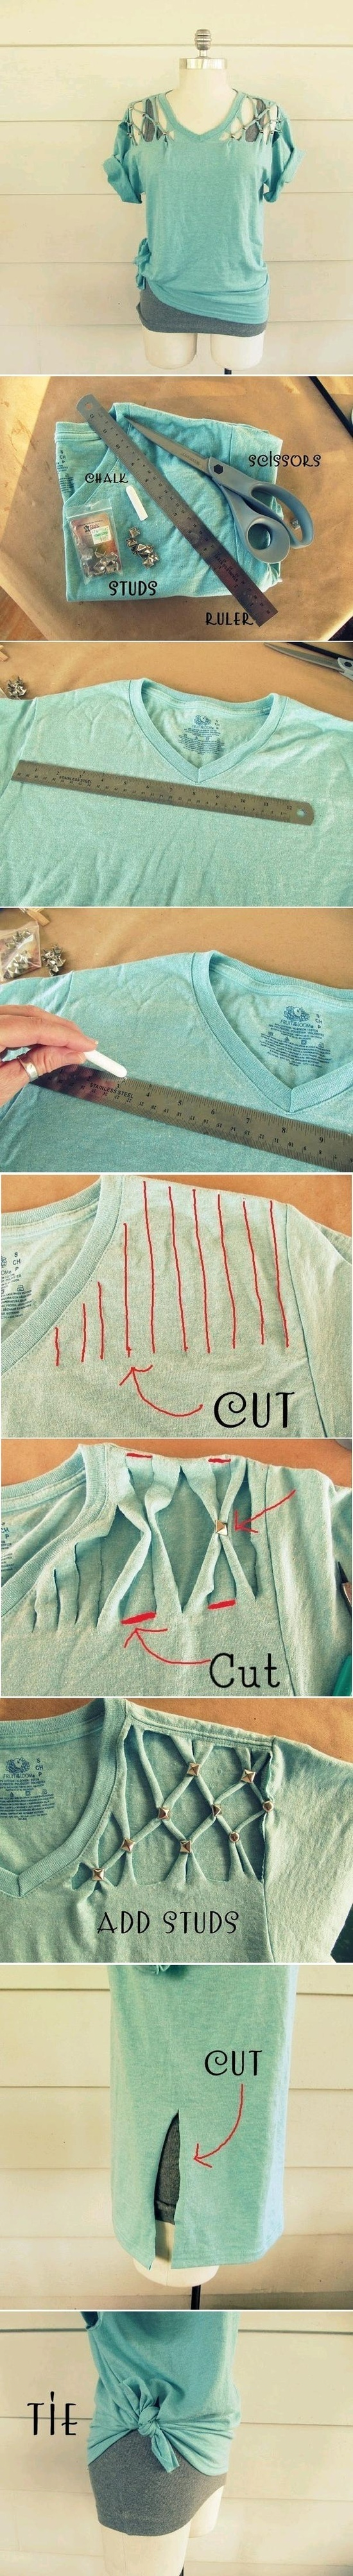 In search of the perfect #diy tee this summer!